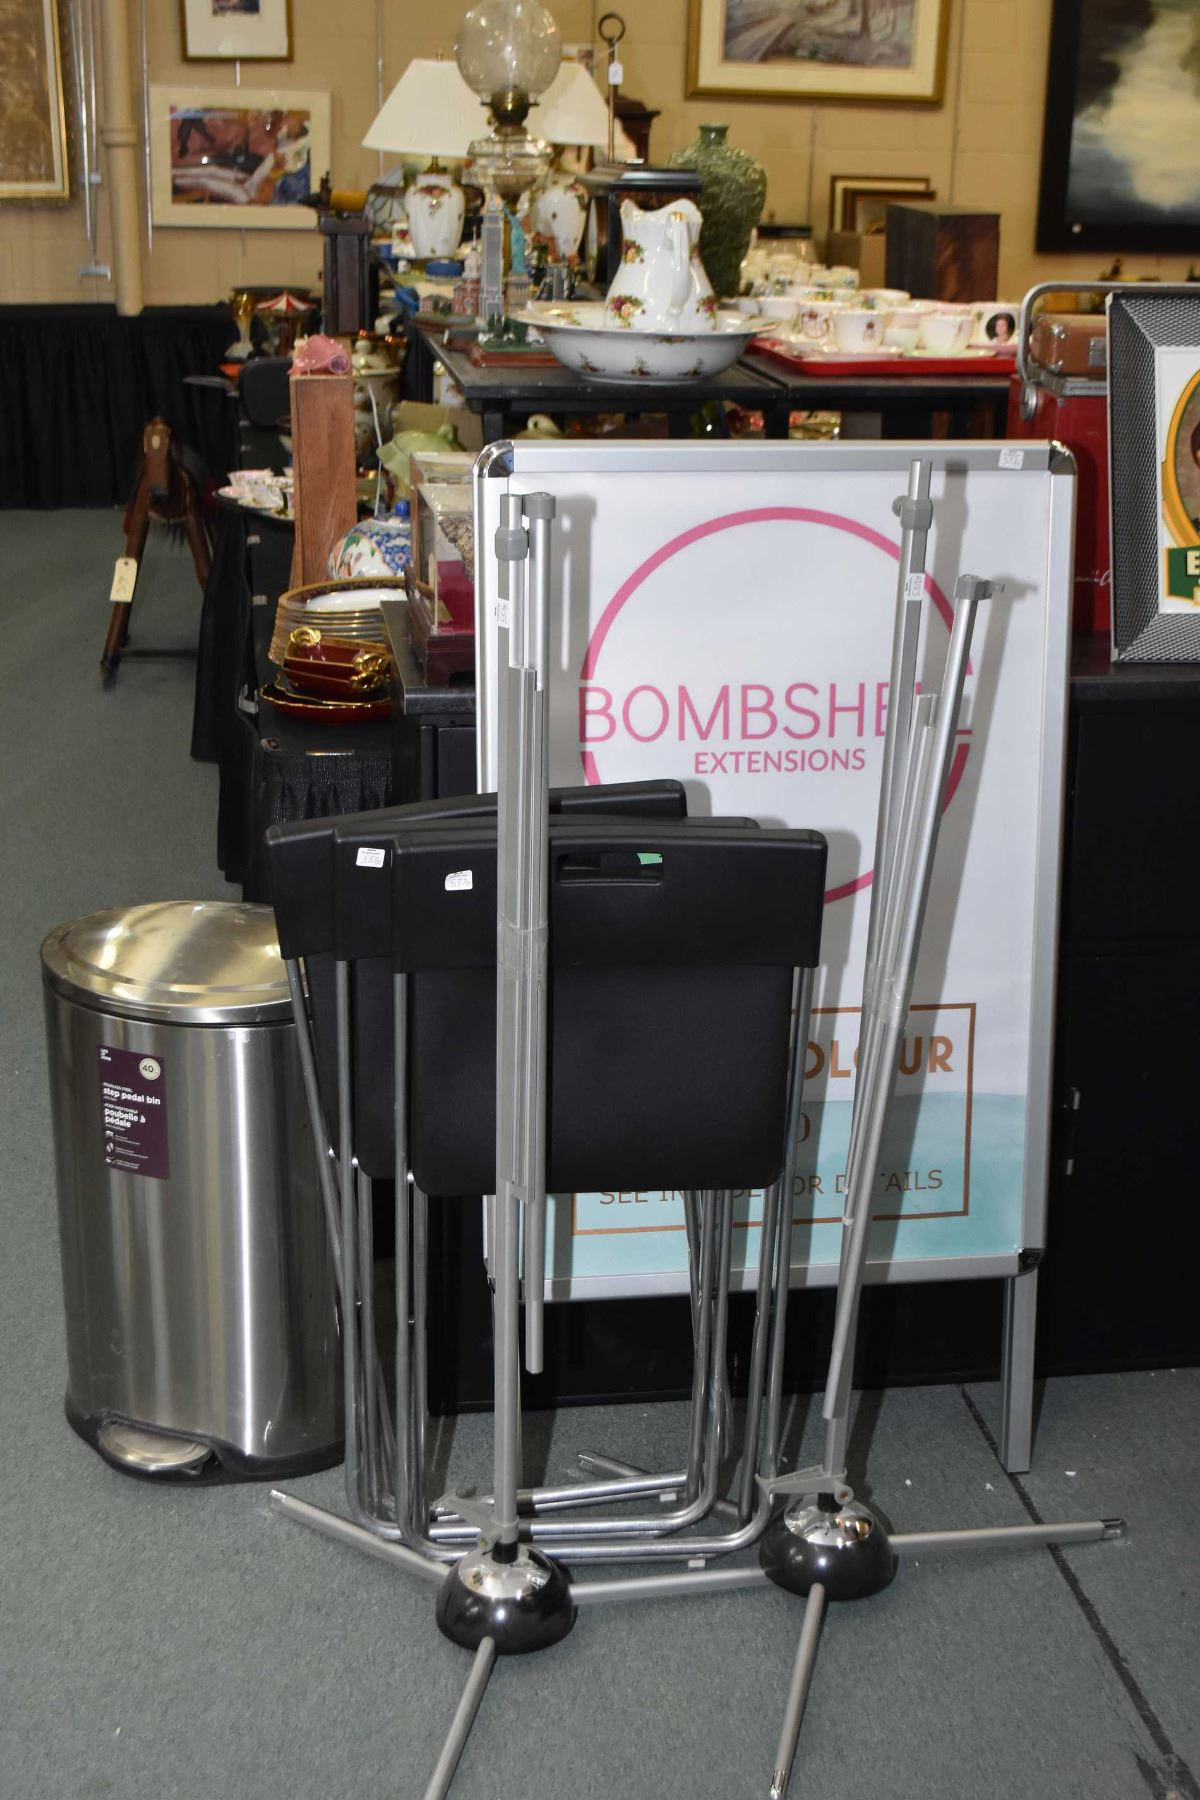 Selection Of Hair Salon Items Including Garbage Can Three Folding